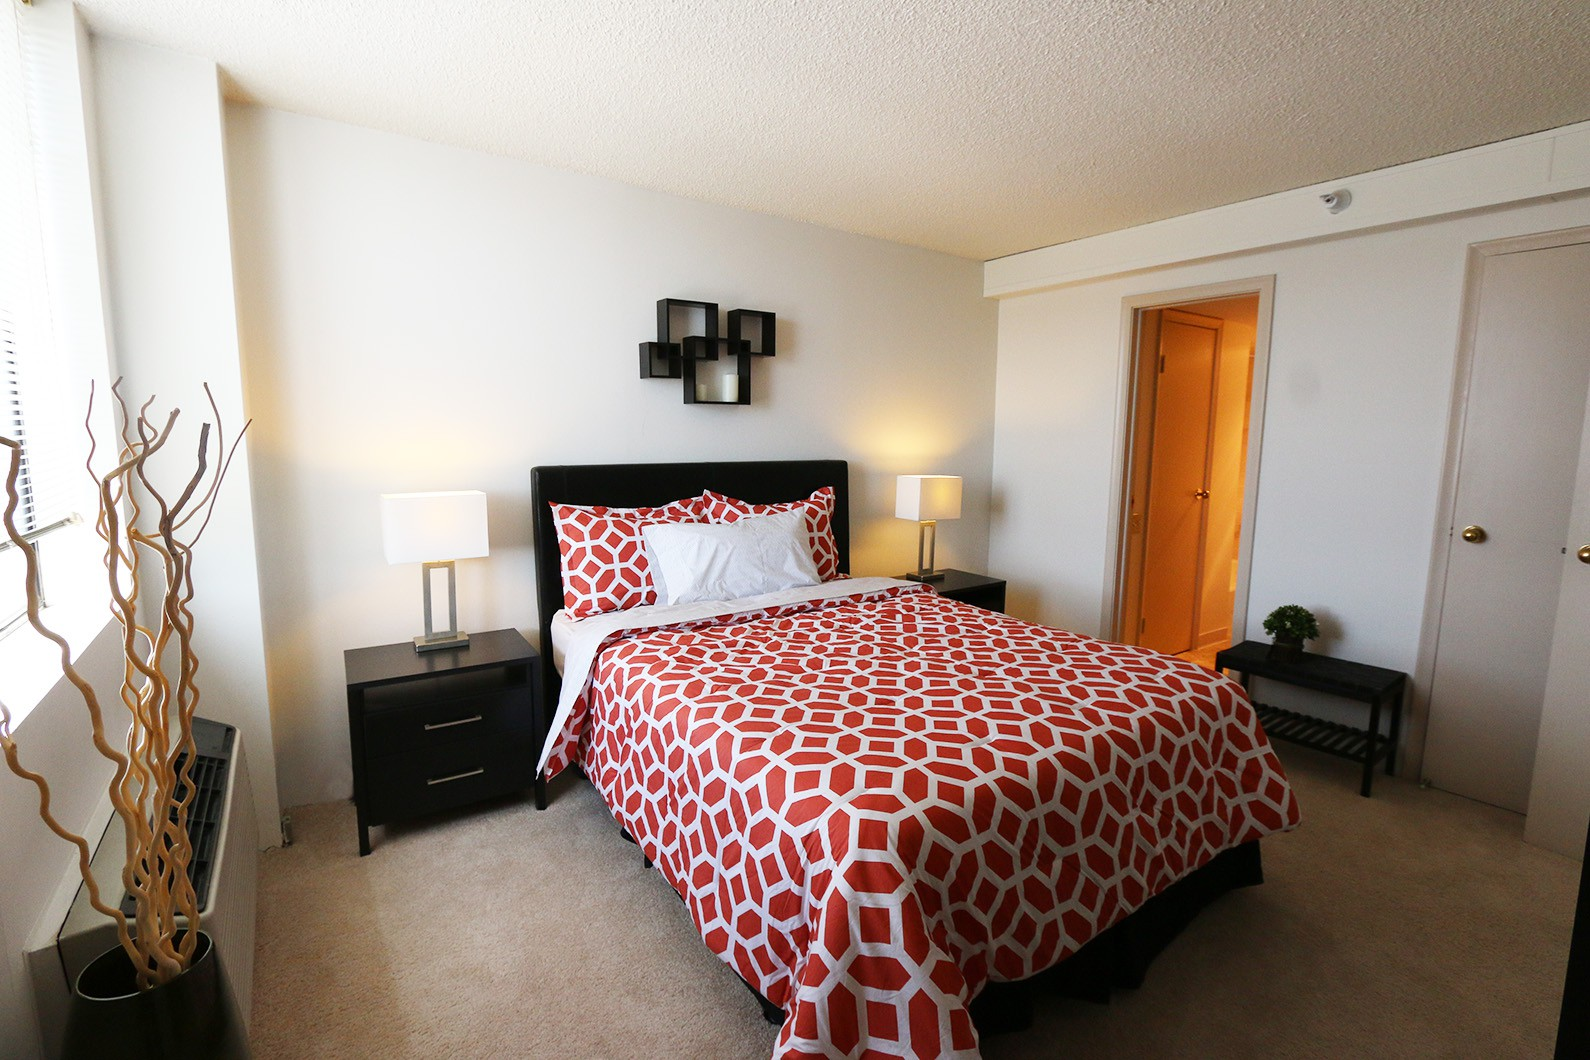 Apartments Near Omaha Westbrook Tower Apartments - TWO MONTH FREE W/13 MONTH LEASE for Omaha Students in Omaha, NE